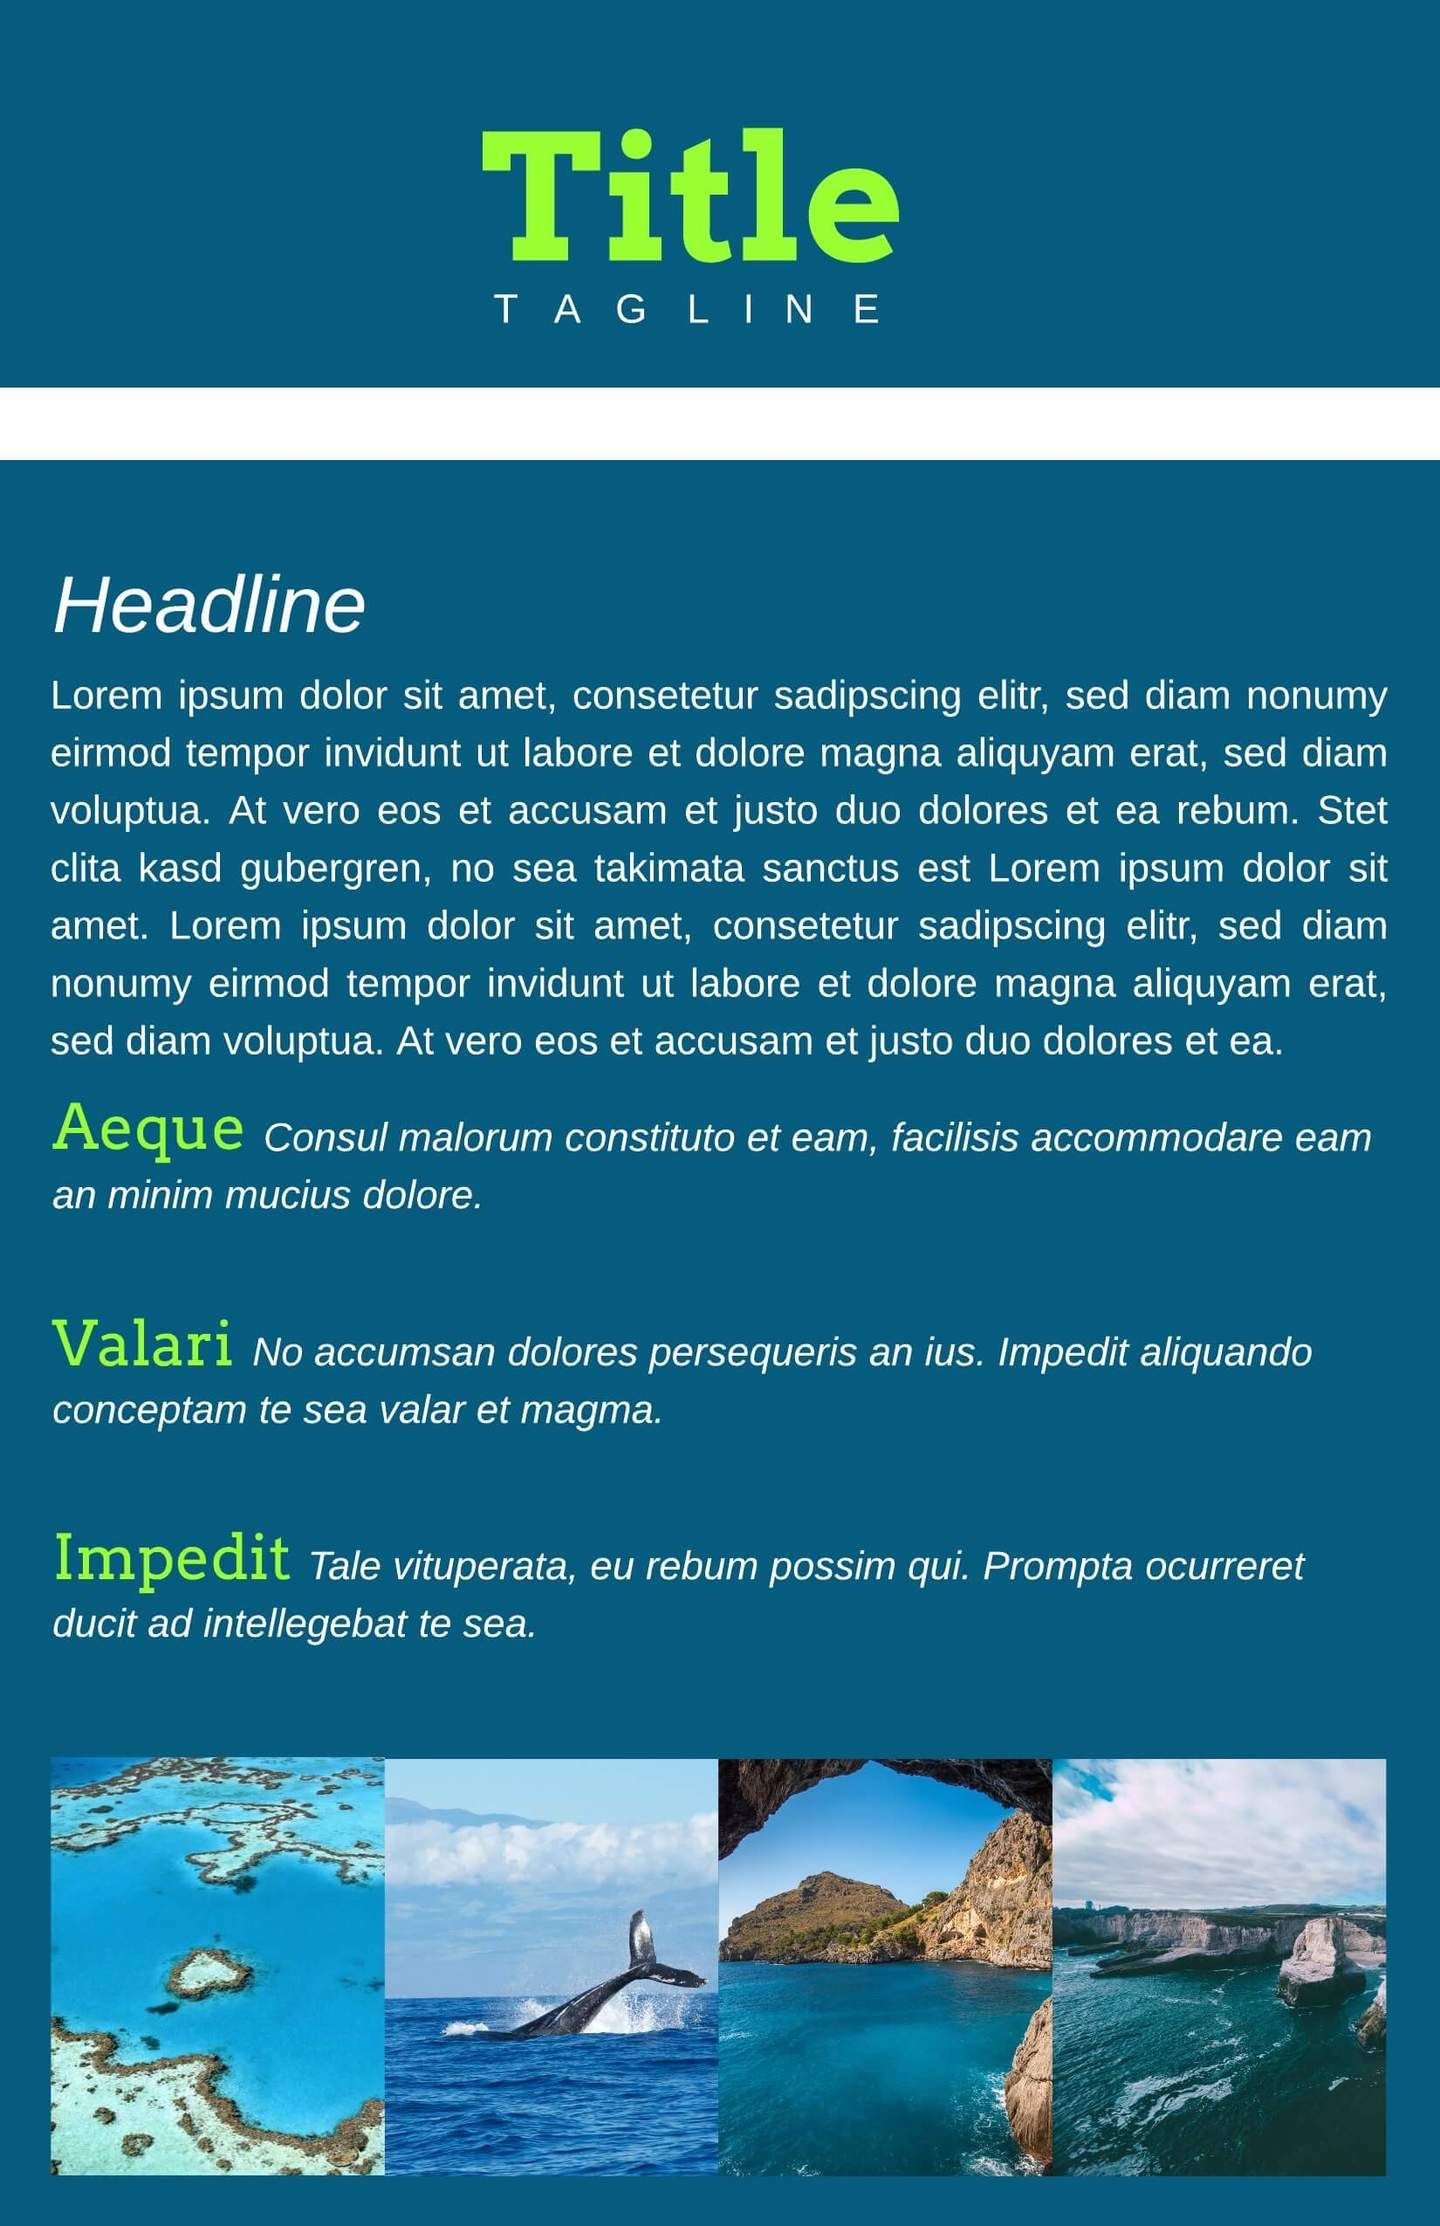 Tourist Leaflet Template